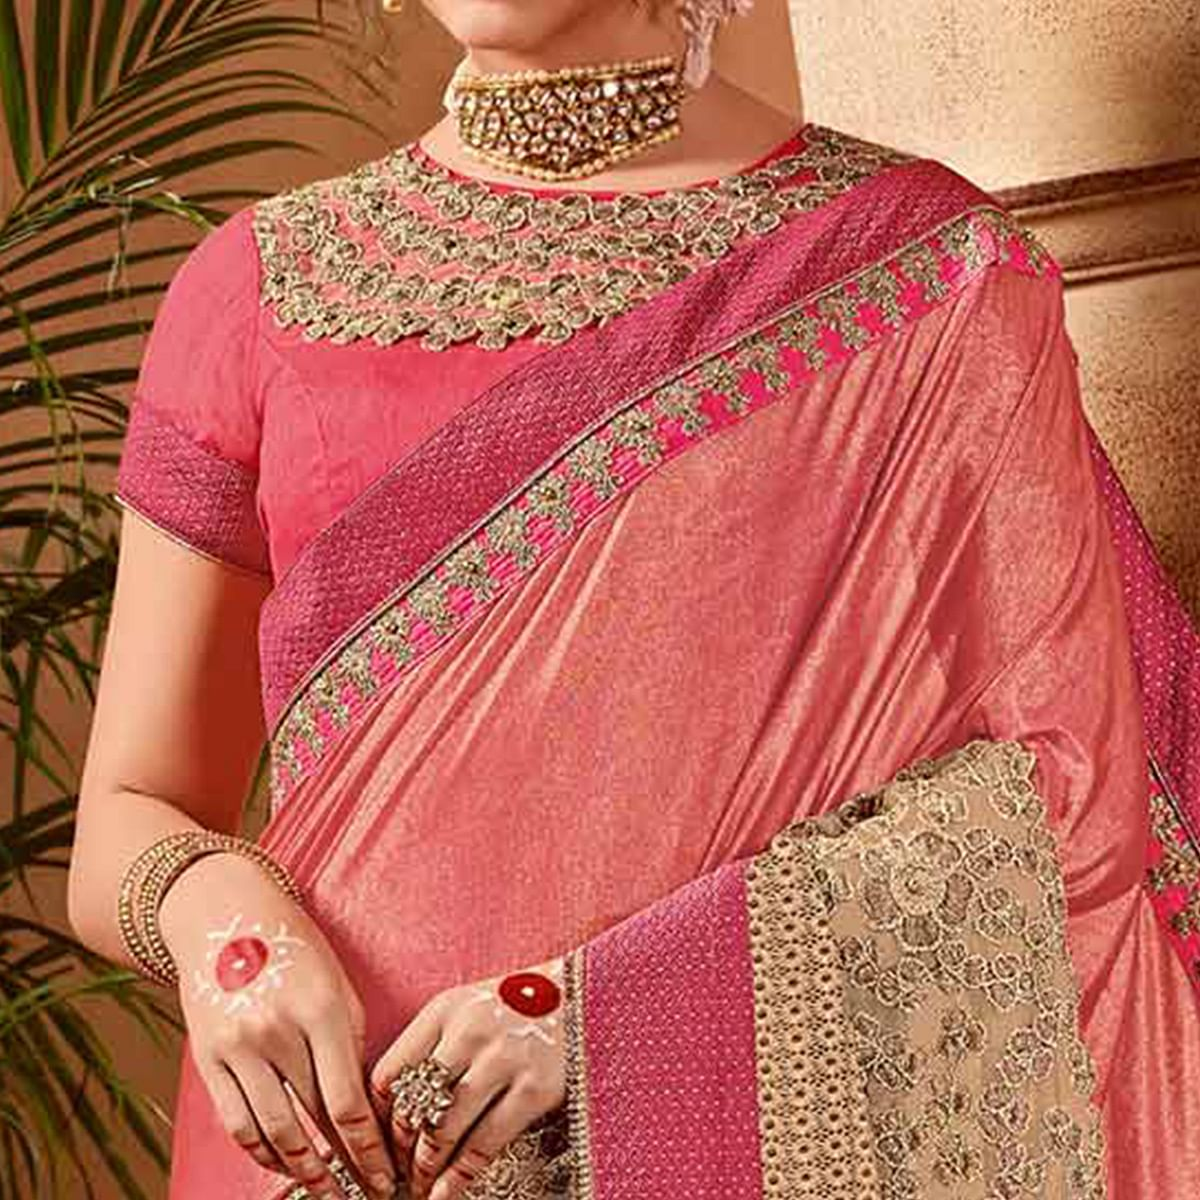 Awesome Pink-Beige Colored Partywear Embroidered Glitter Lycra-Net Saree